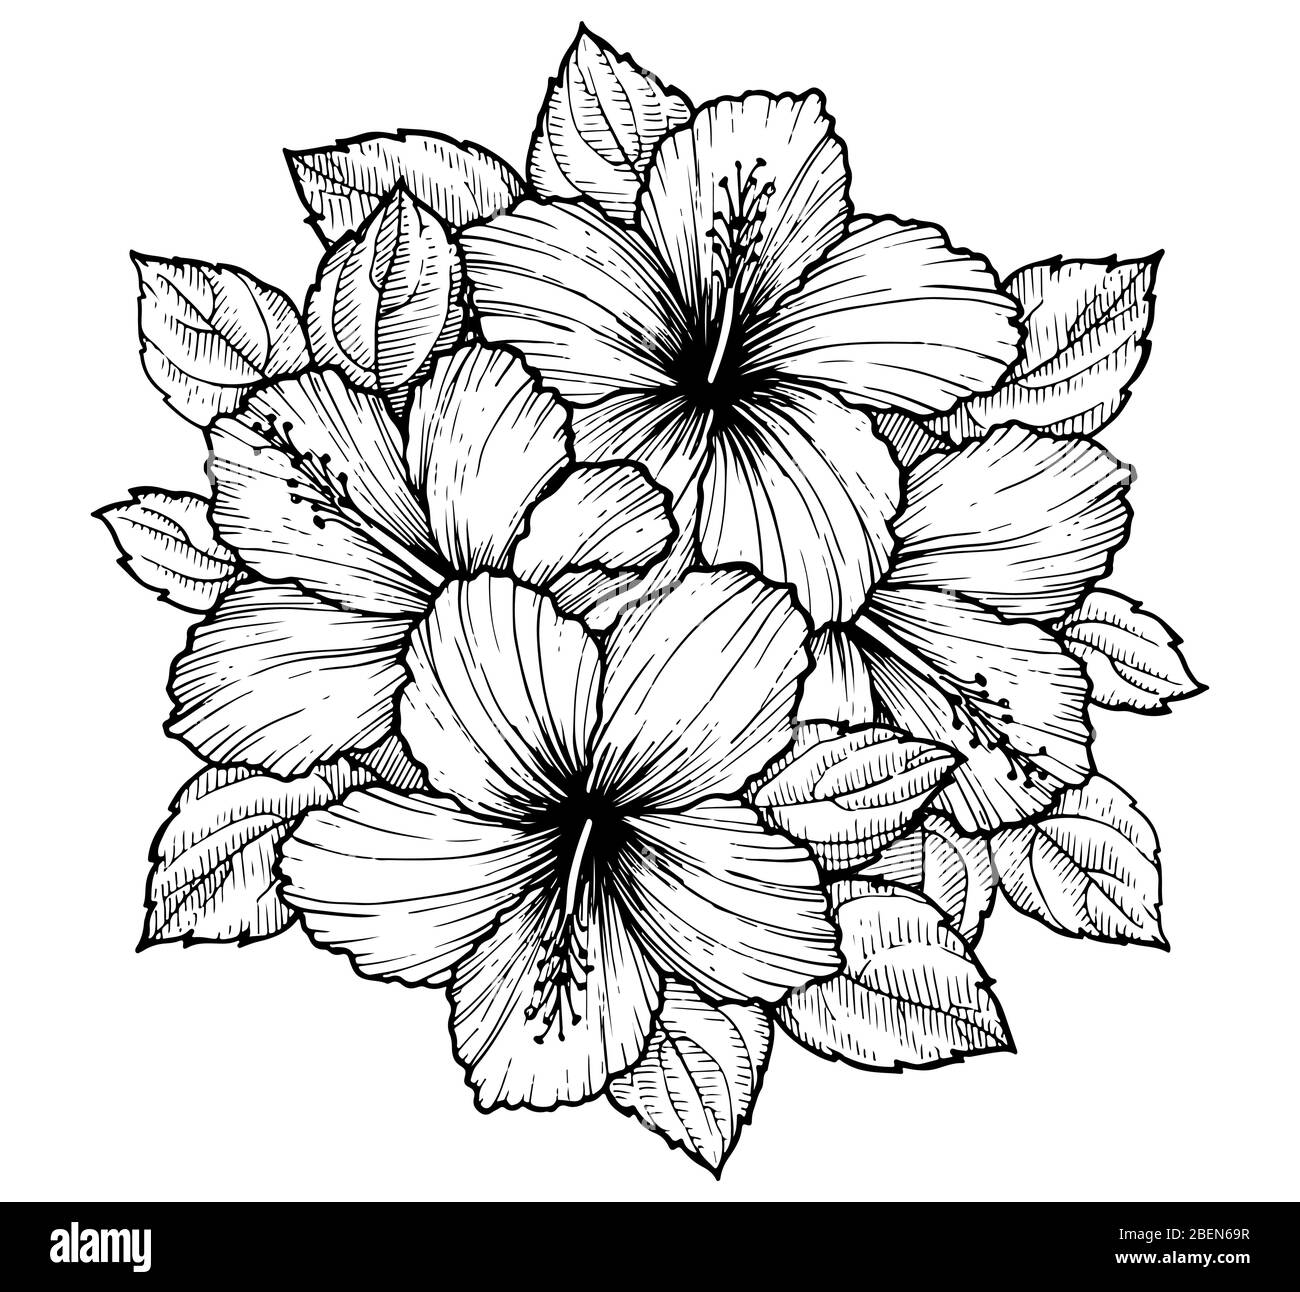 Hand Drawn Tropical Hibiscus Flower Bouquet With Leaves Sketch Florals On White Background Exotic Blooms Engraving Style For Textile Surface Desig Stock Vector Image Art Alamy